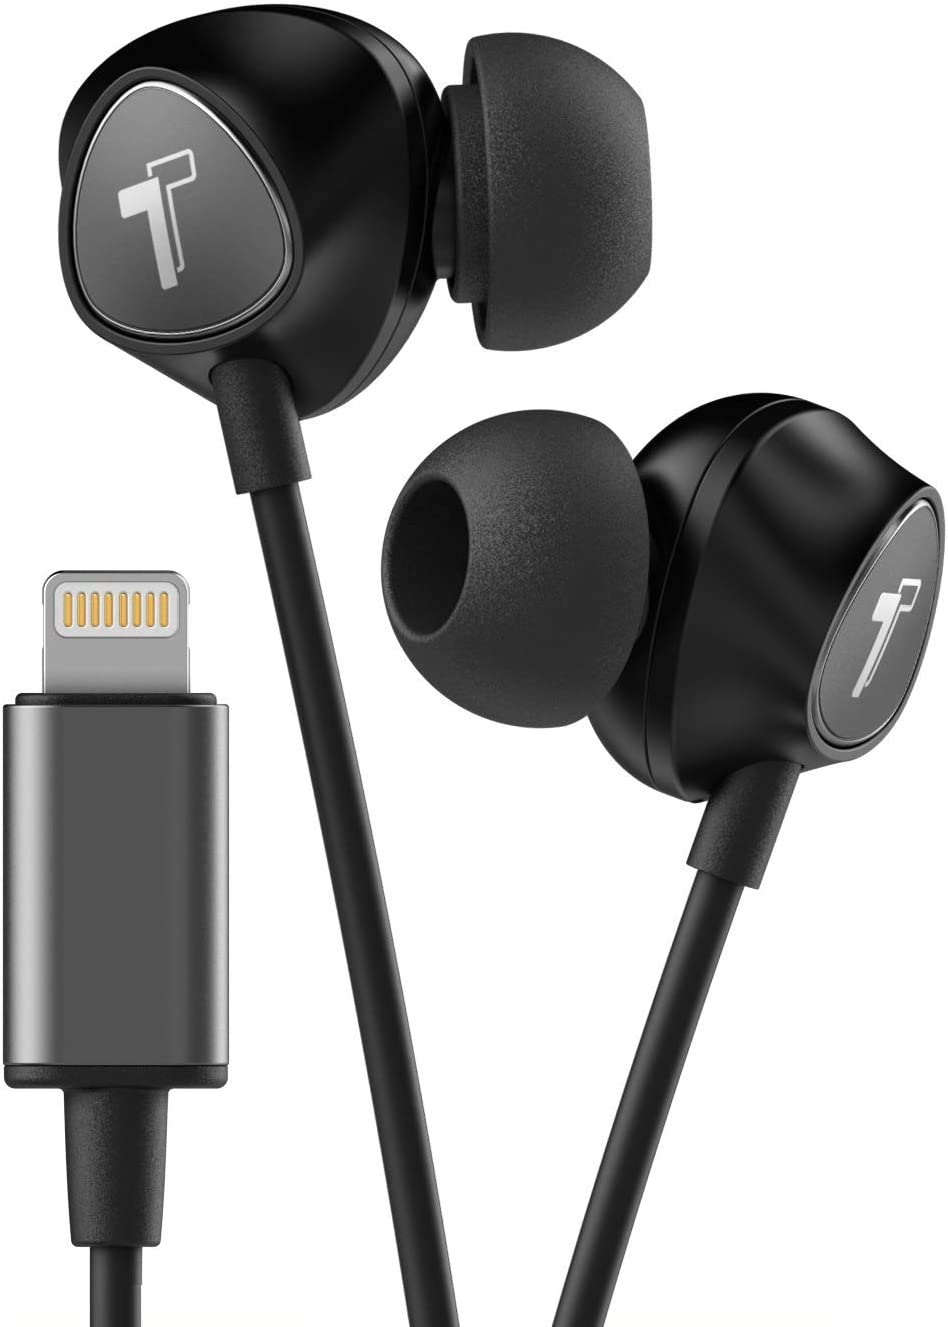 Thore Wired iPhone Headphones with Lightning Connector Earphones - MFi Certified by Apple Earbuds Wired in-Ear Microphone and Volume Remote for iPhone 12 Mini, XR, XS Max, 11, 11 Pro,7,8 Plus (Black)